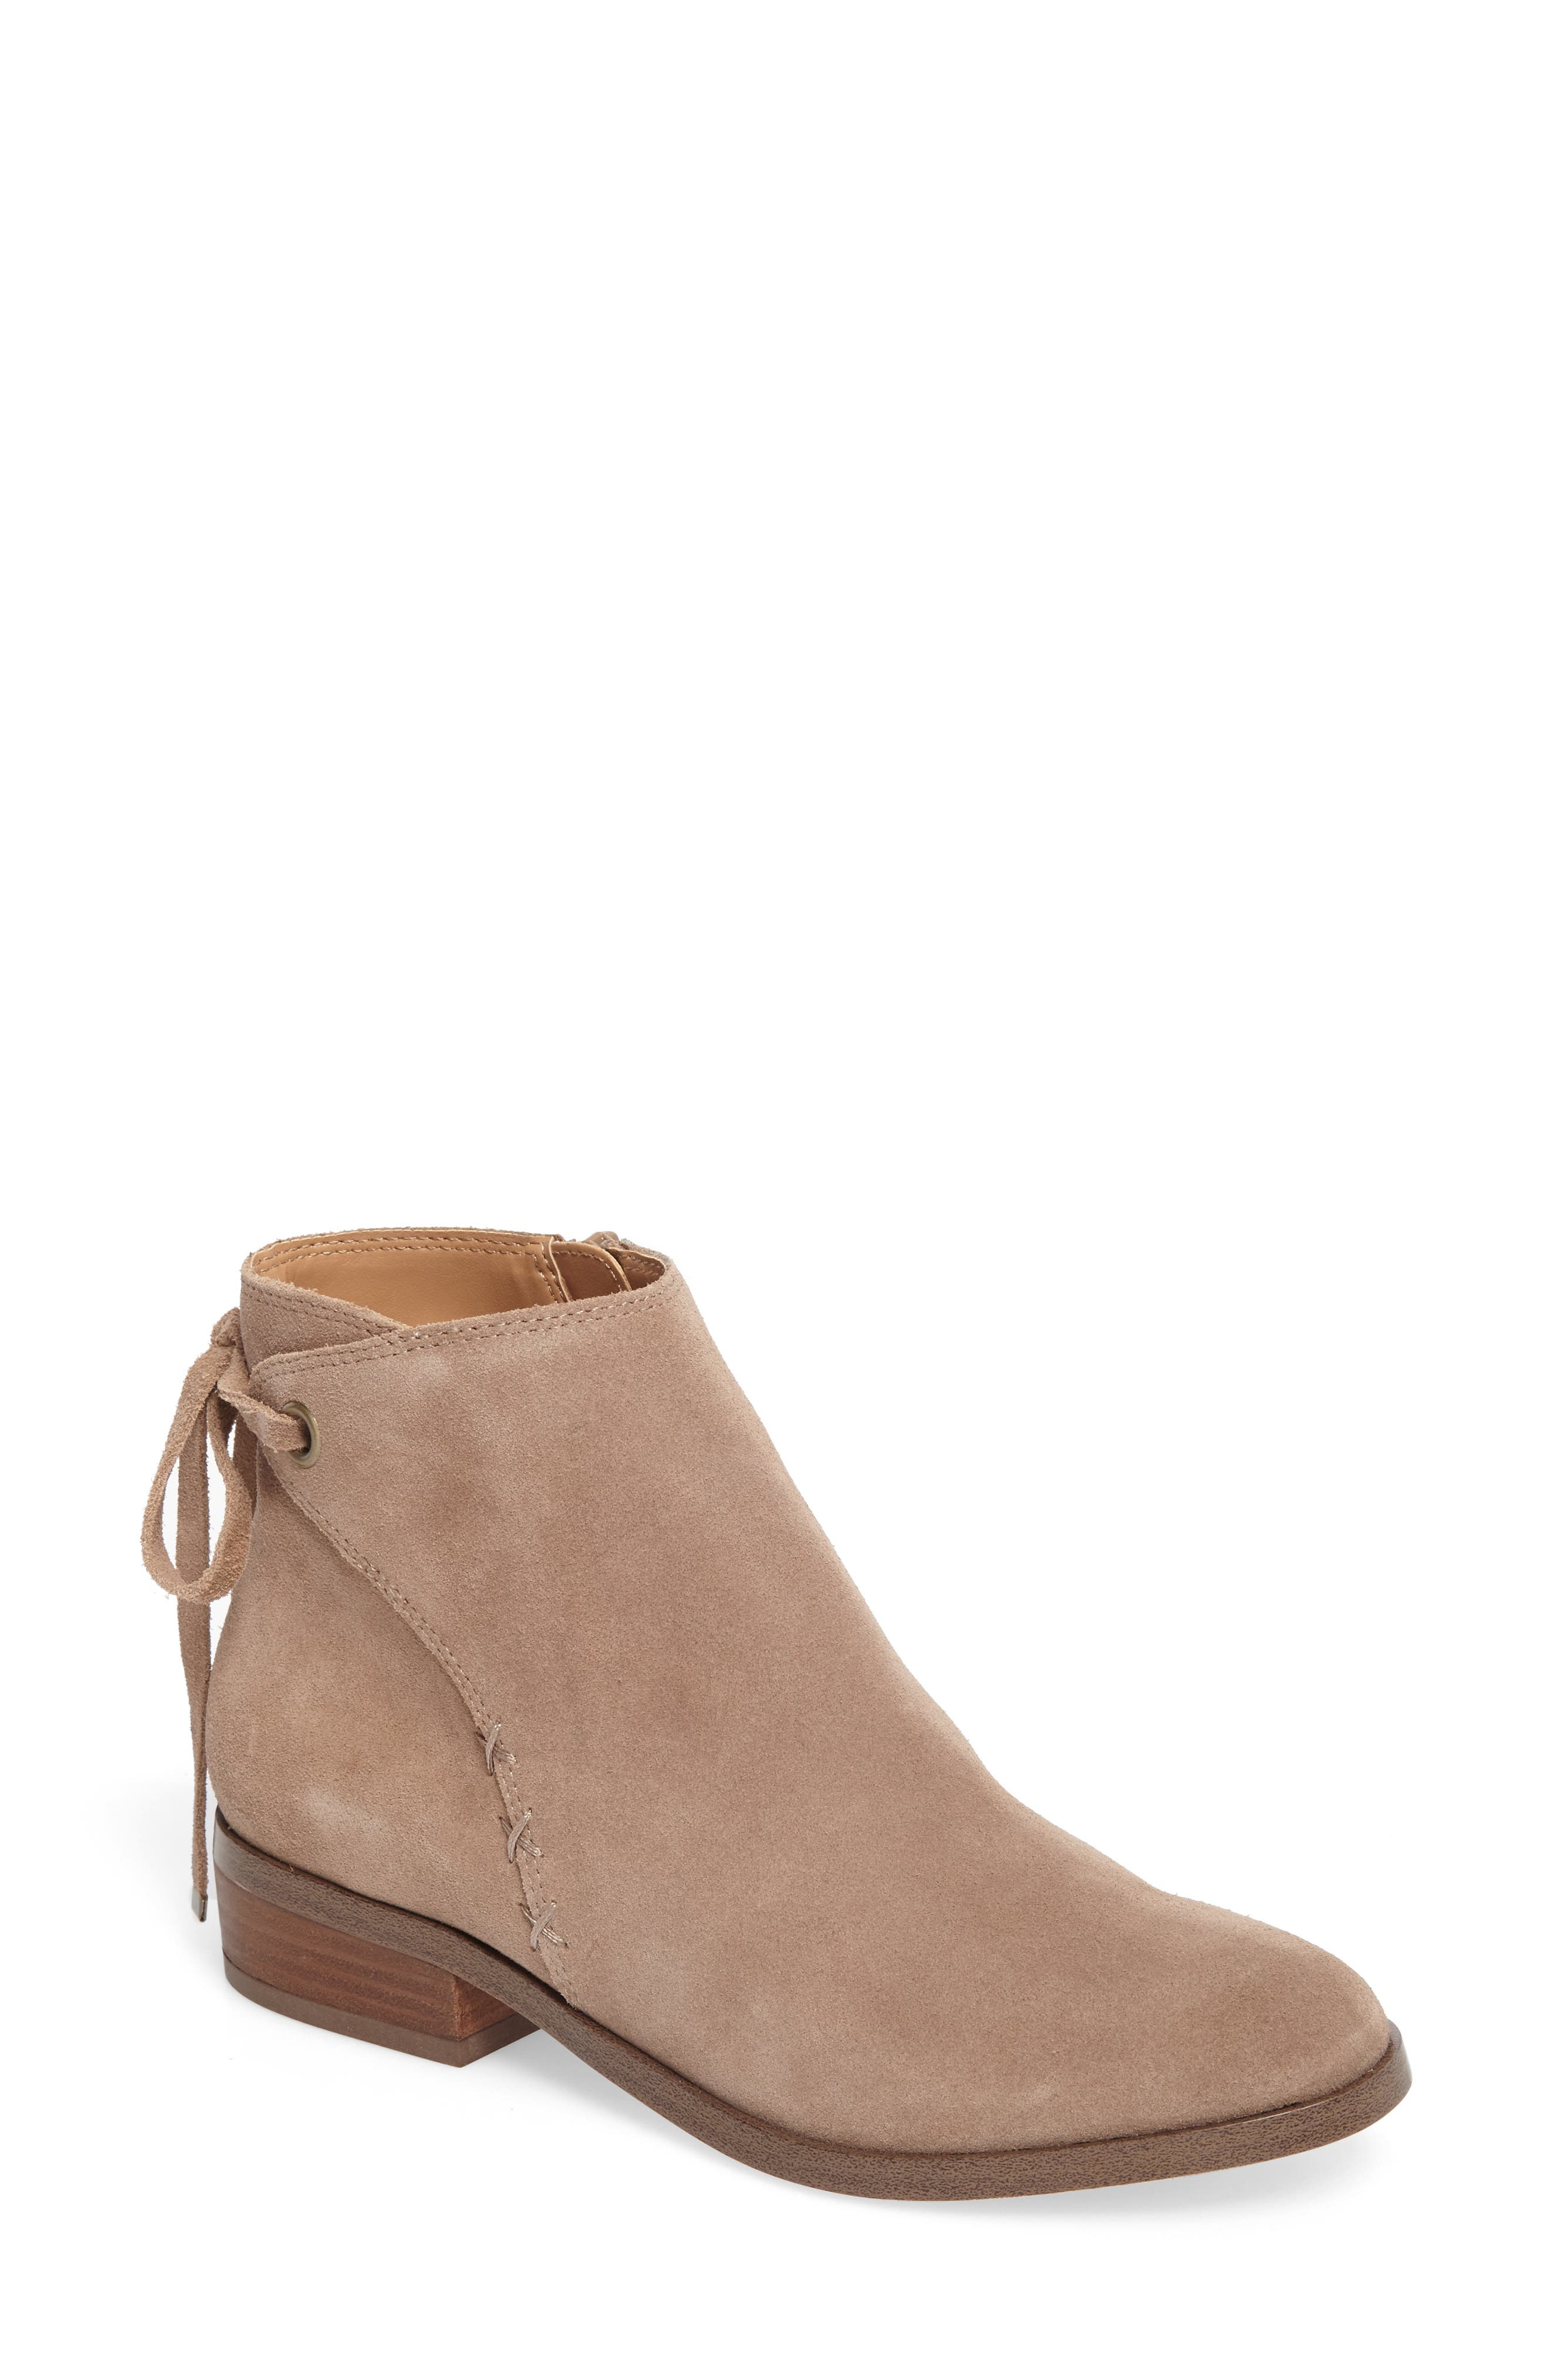 Lachlan Tie Back Bootie,                         Main,                         color, Taupe